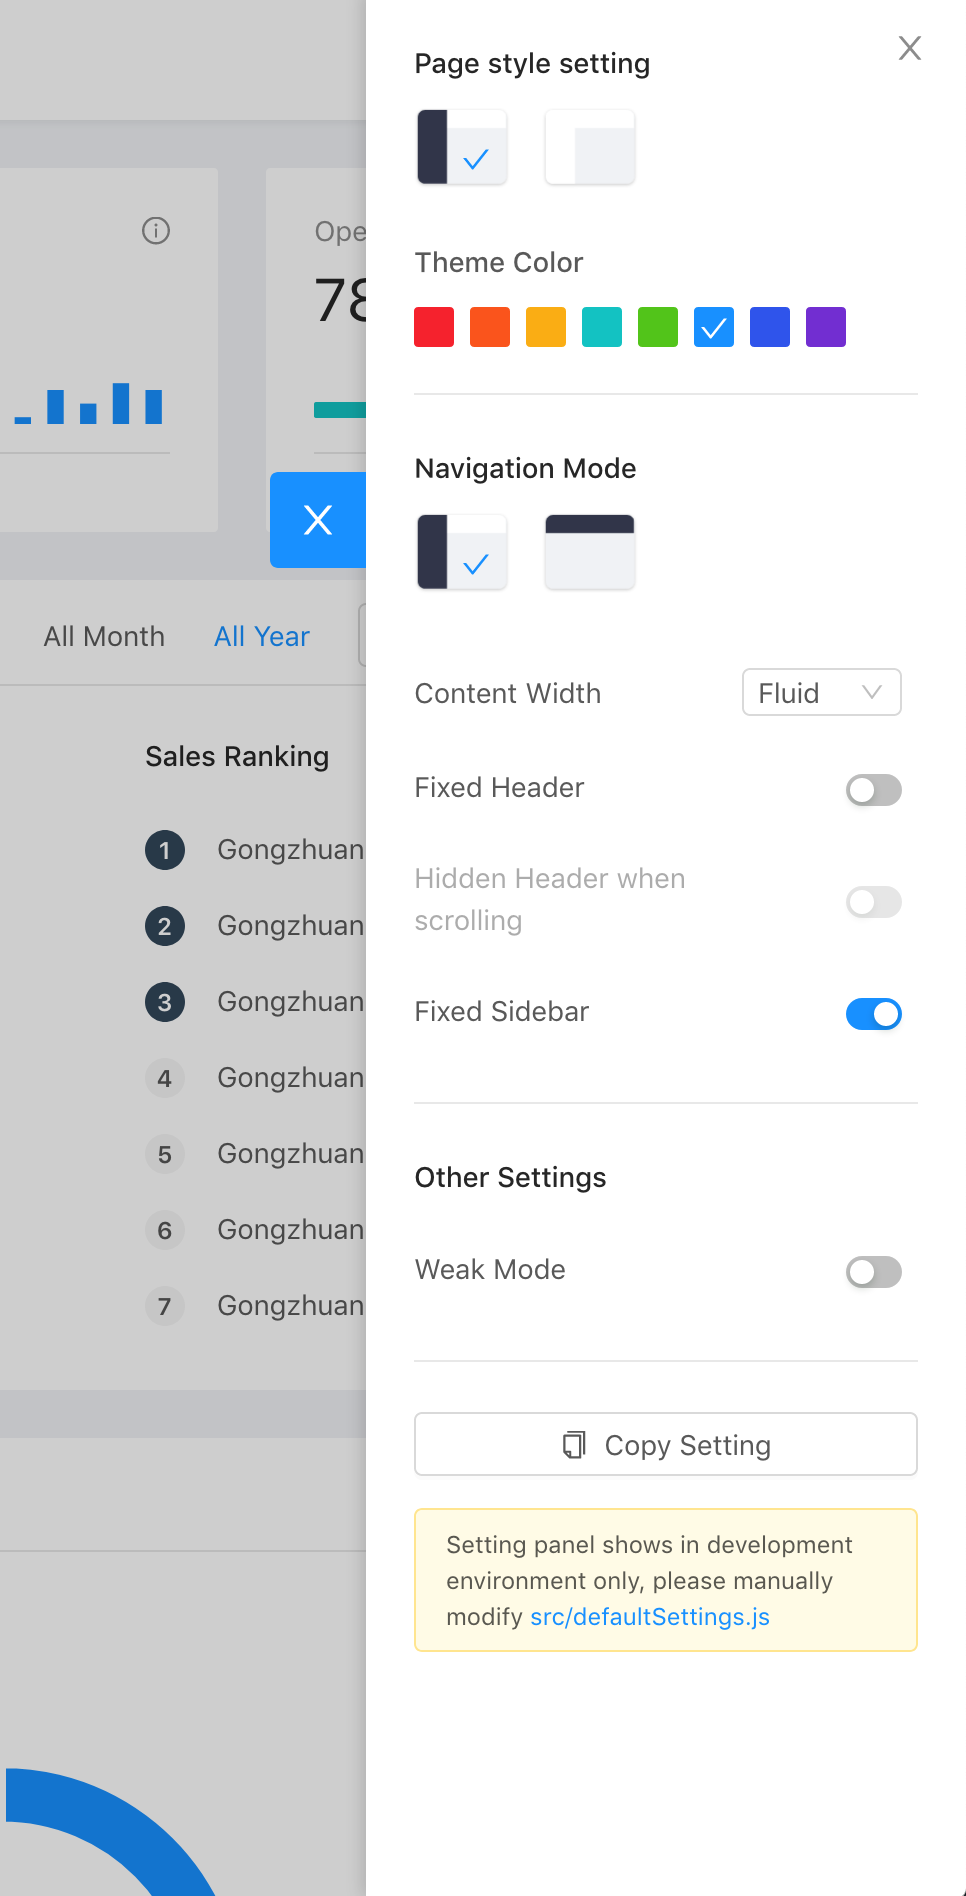 Fixed collapsible sider menu · Issue #6997 · ant-design/ant-design